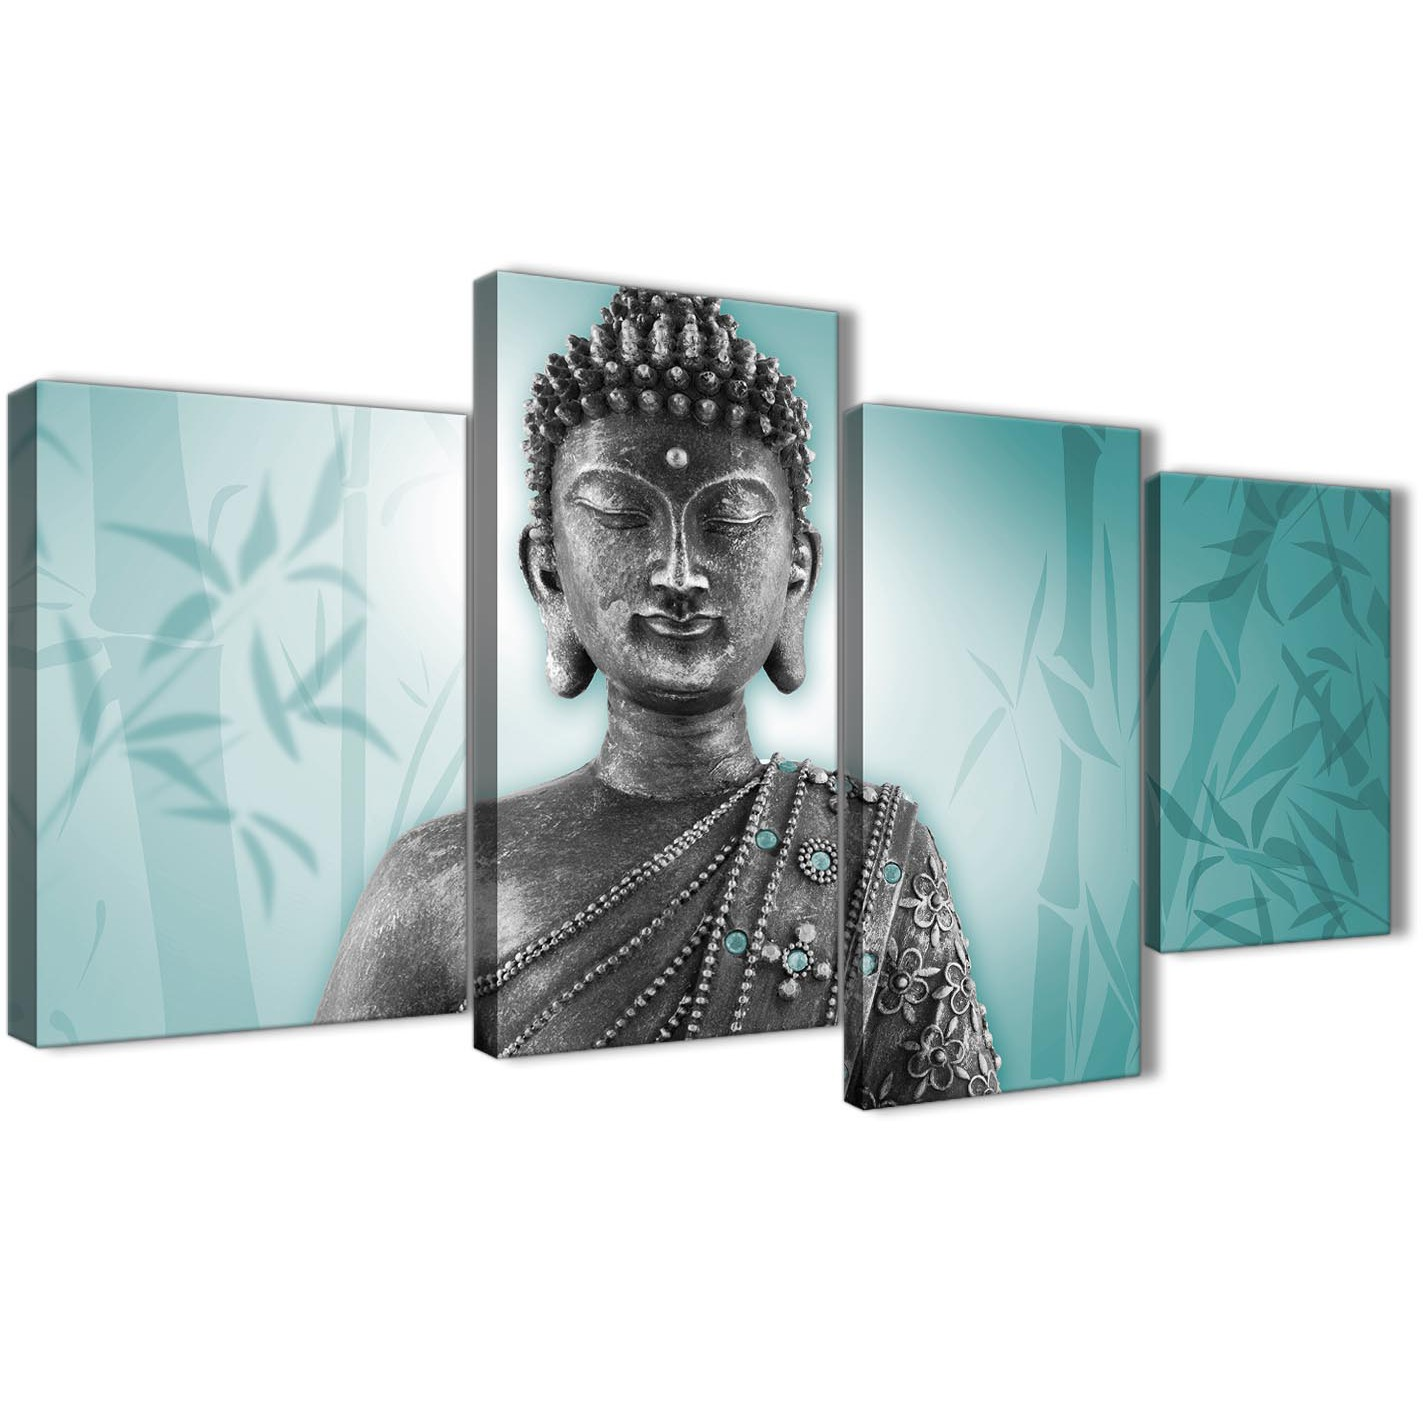 Oversized Large Teal And Grey Silver Wall Art Prints Of Buddha Canvas Multi  4 Piece 4327 Display Gallery Item 1 ...